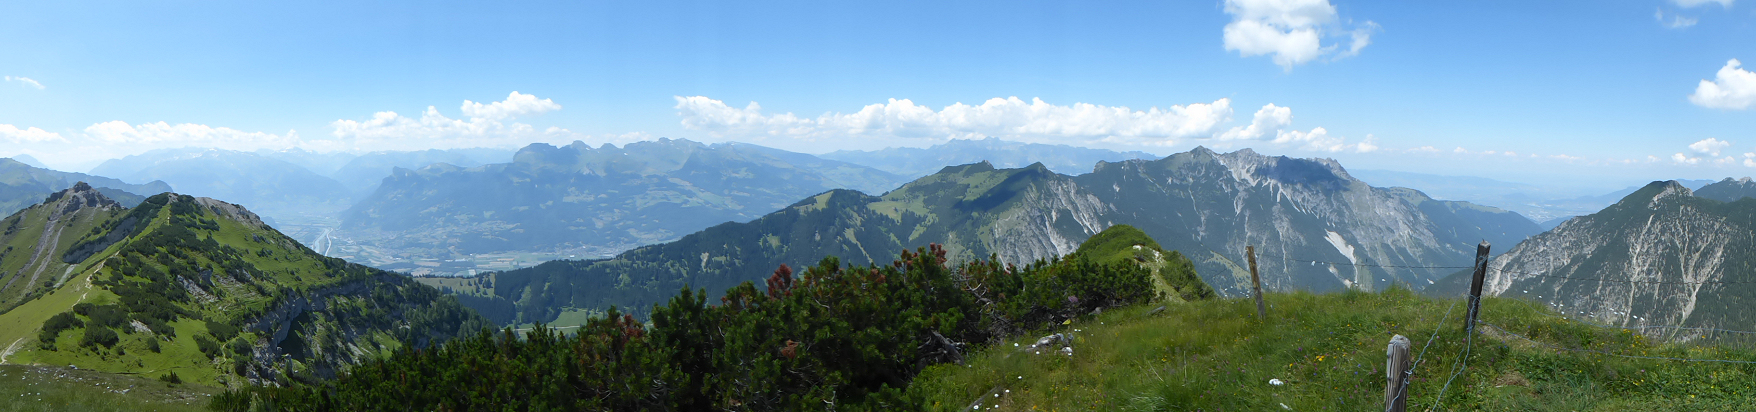 Panorama − View from Schönberg in direction to the Rhine and the mountain range from Helwangspitz to Drei Schwestern